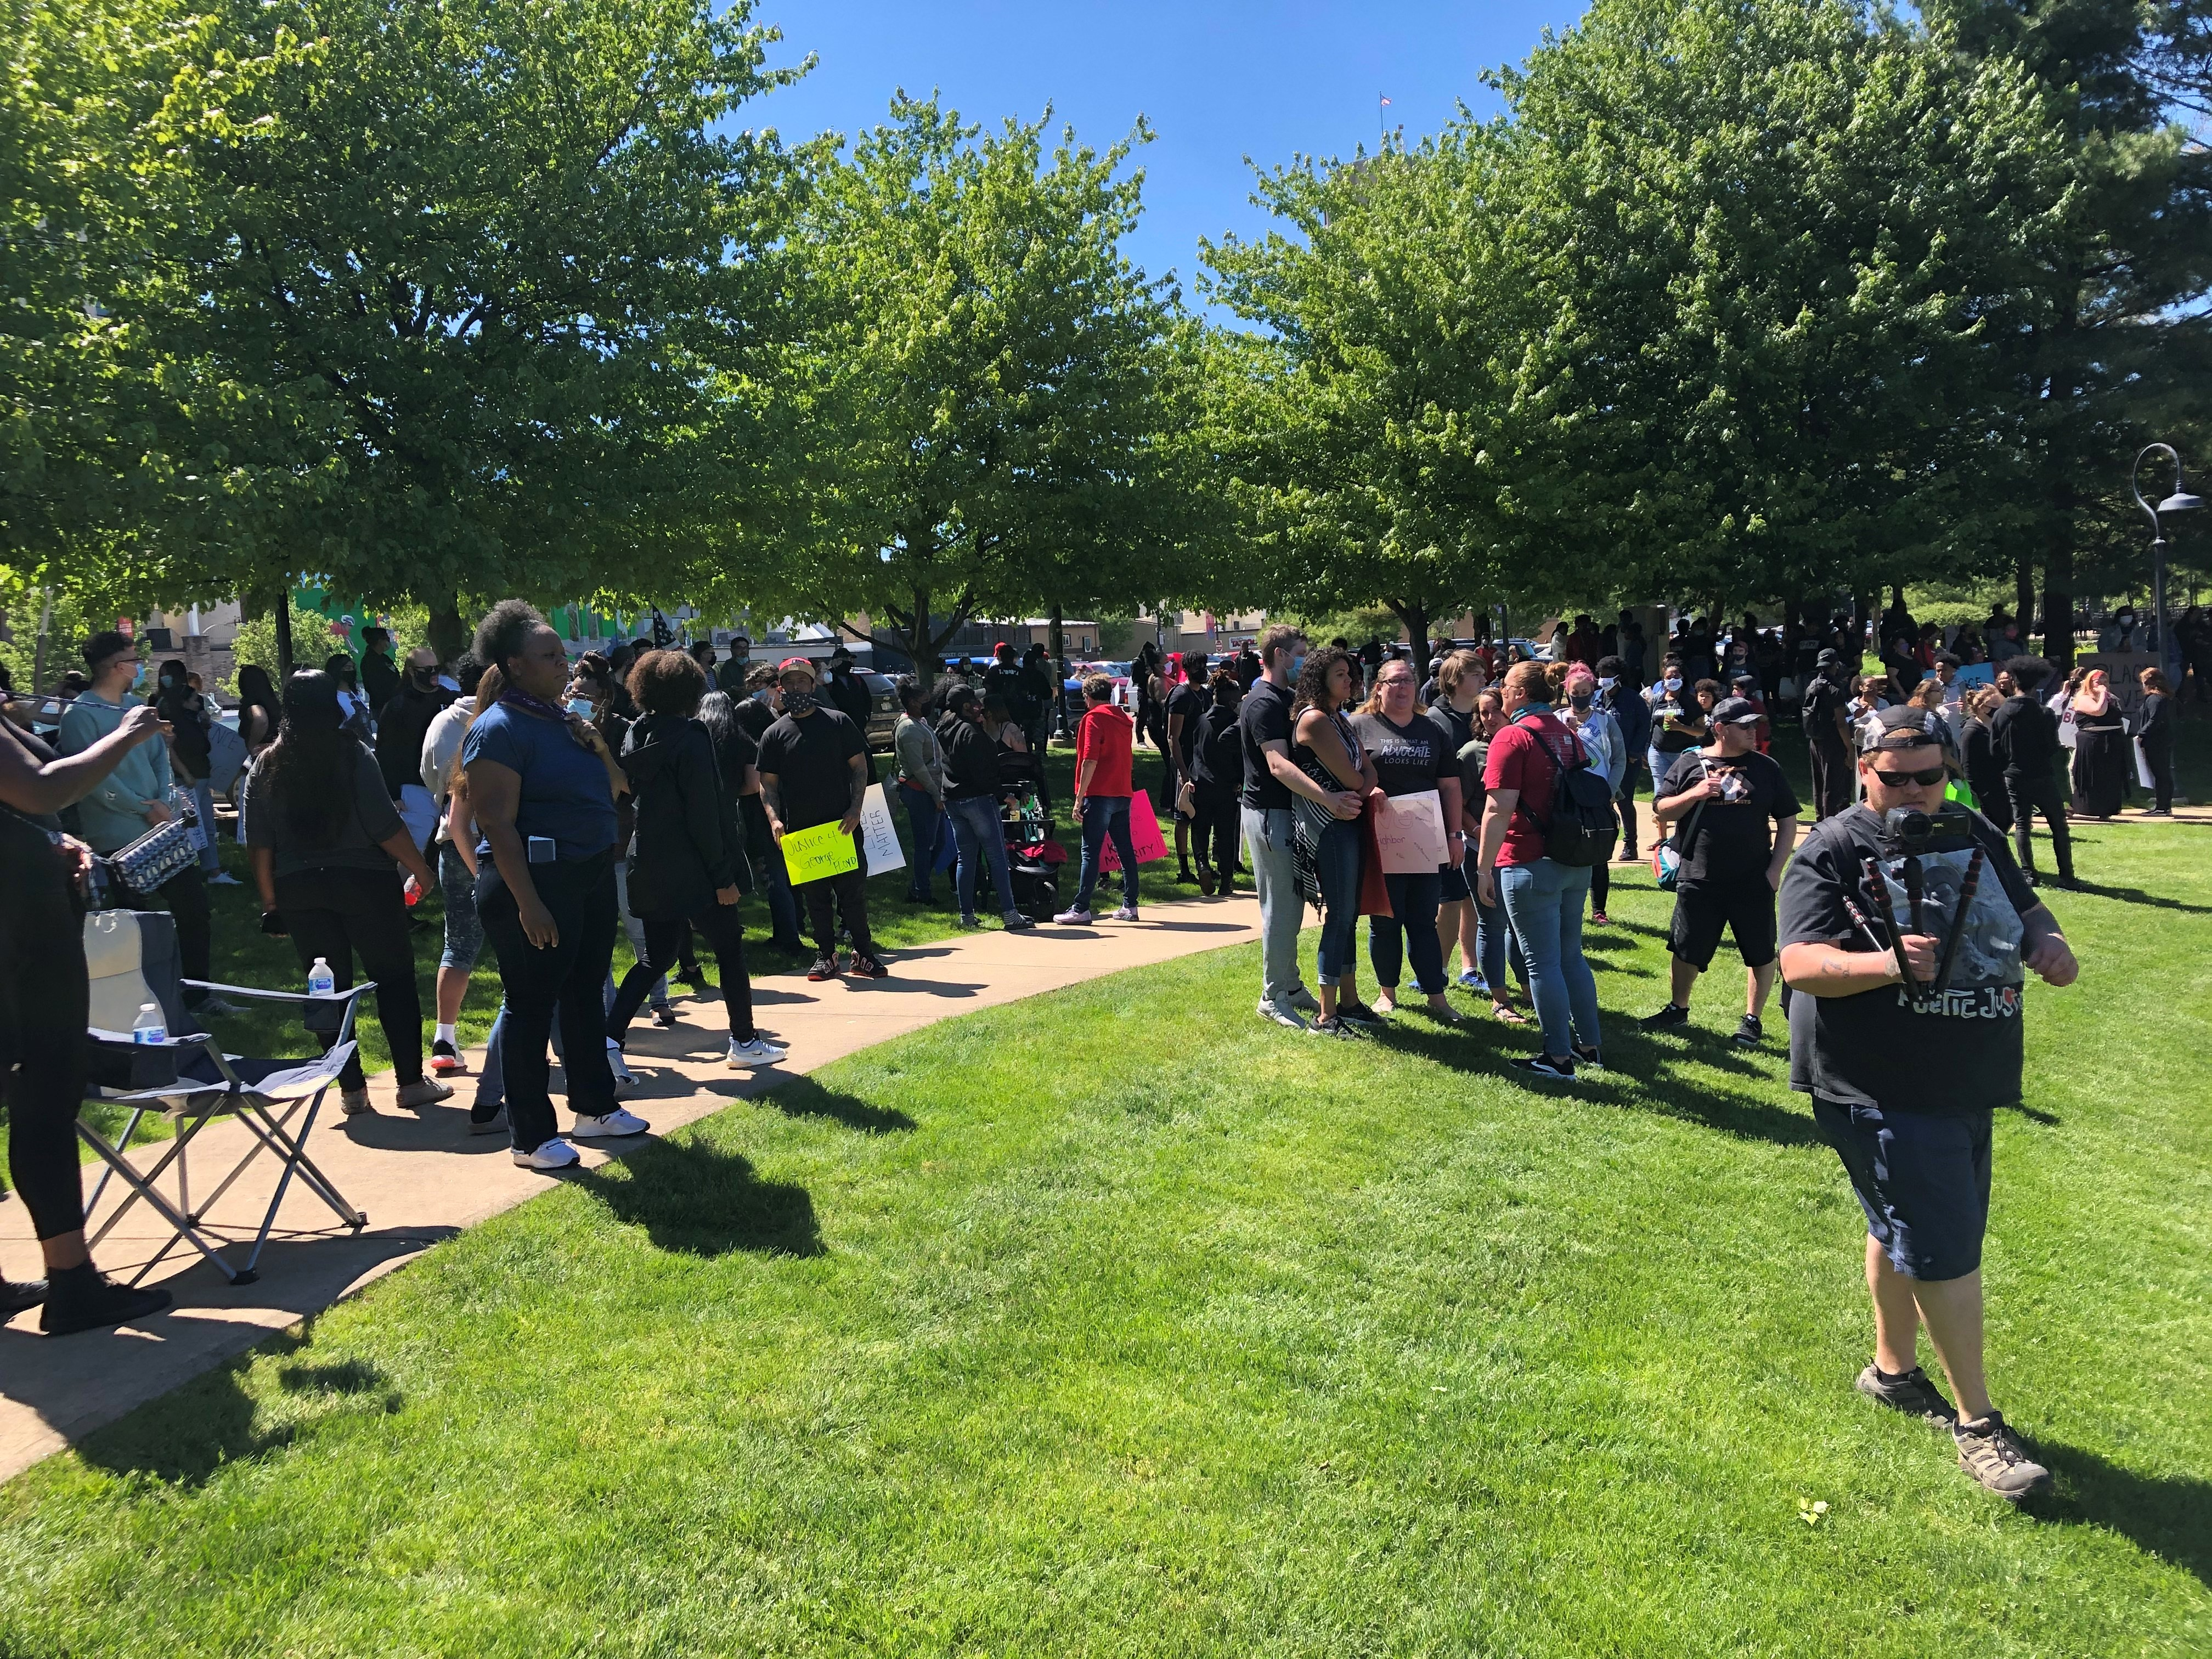 On Sunday, May 31, 2020 people walked throughout the streets of Battle Creek with signs protesting the death of George Floyd. (WWMT/Sam Knef)